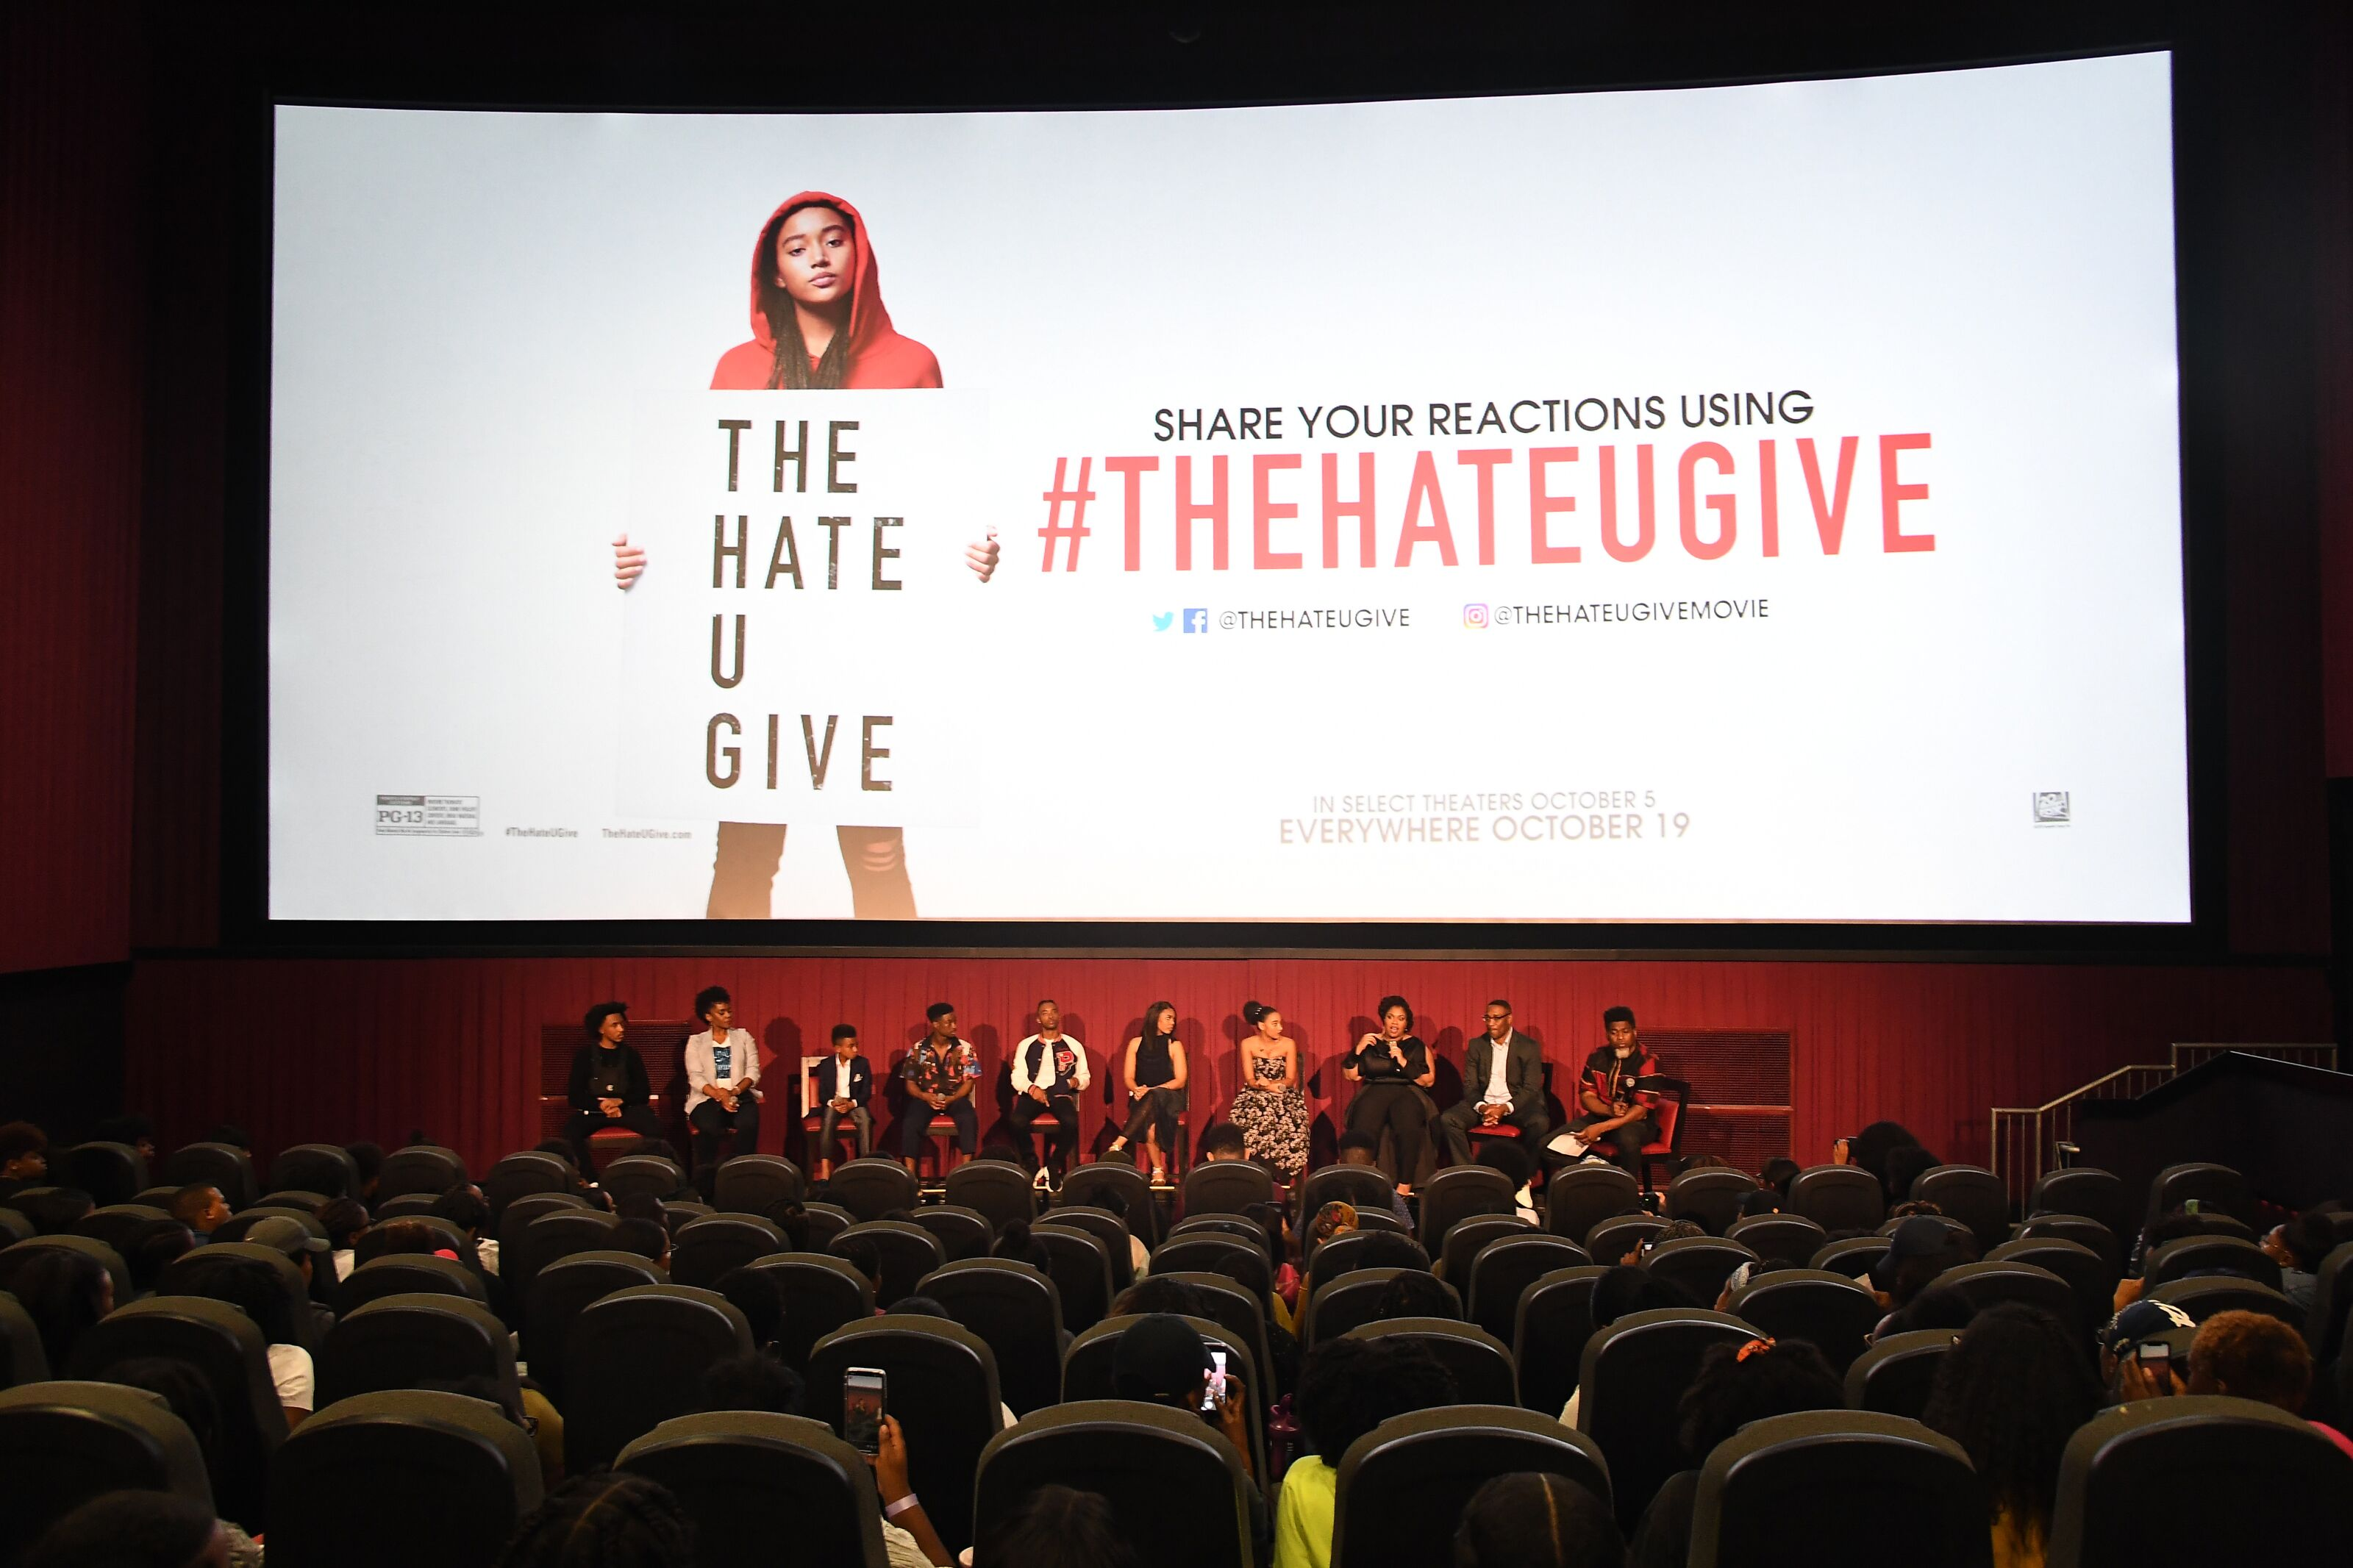 Is The Hate U Give coming to Netflix?